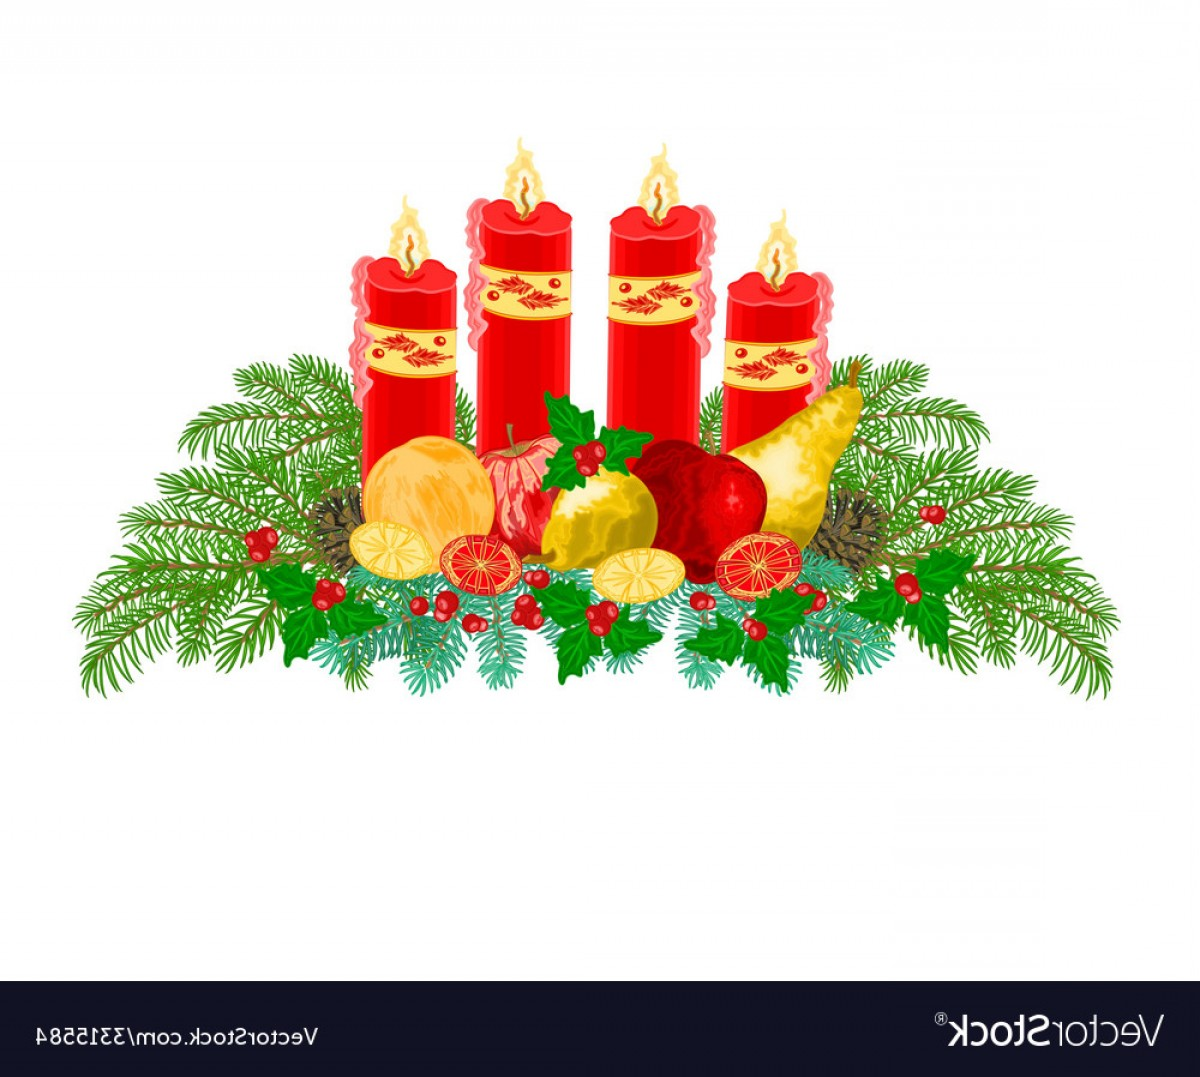 Advent Wreath Vector: Christmas Decoration Advent Wreath With Fruit Vector